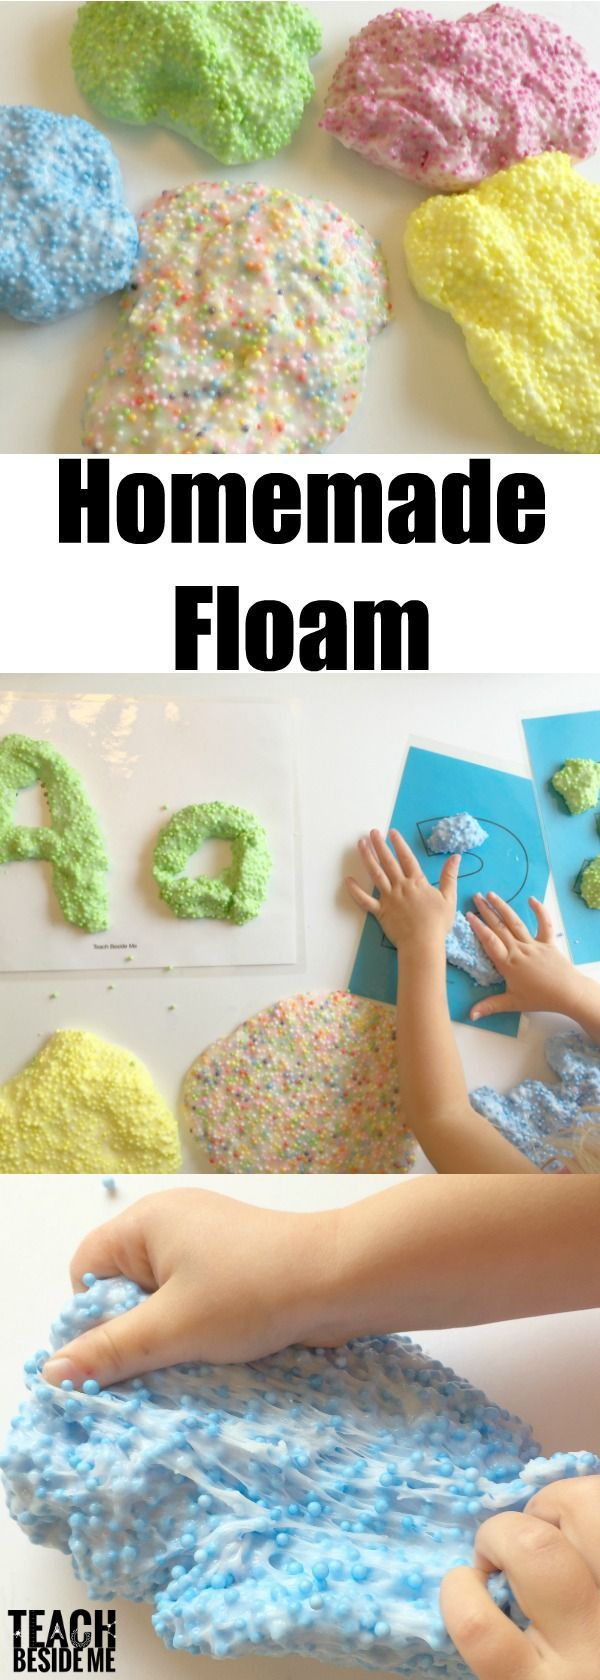 homemade floam learning activities